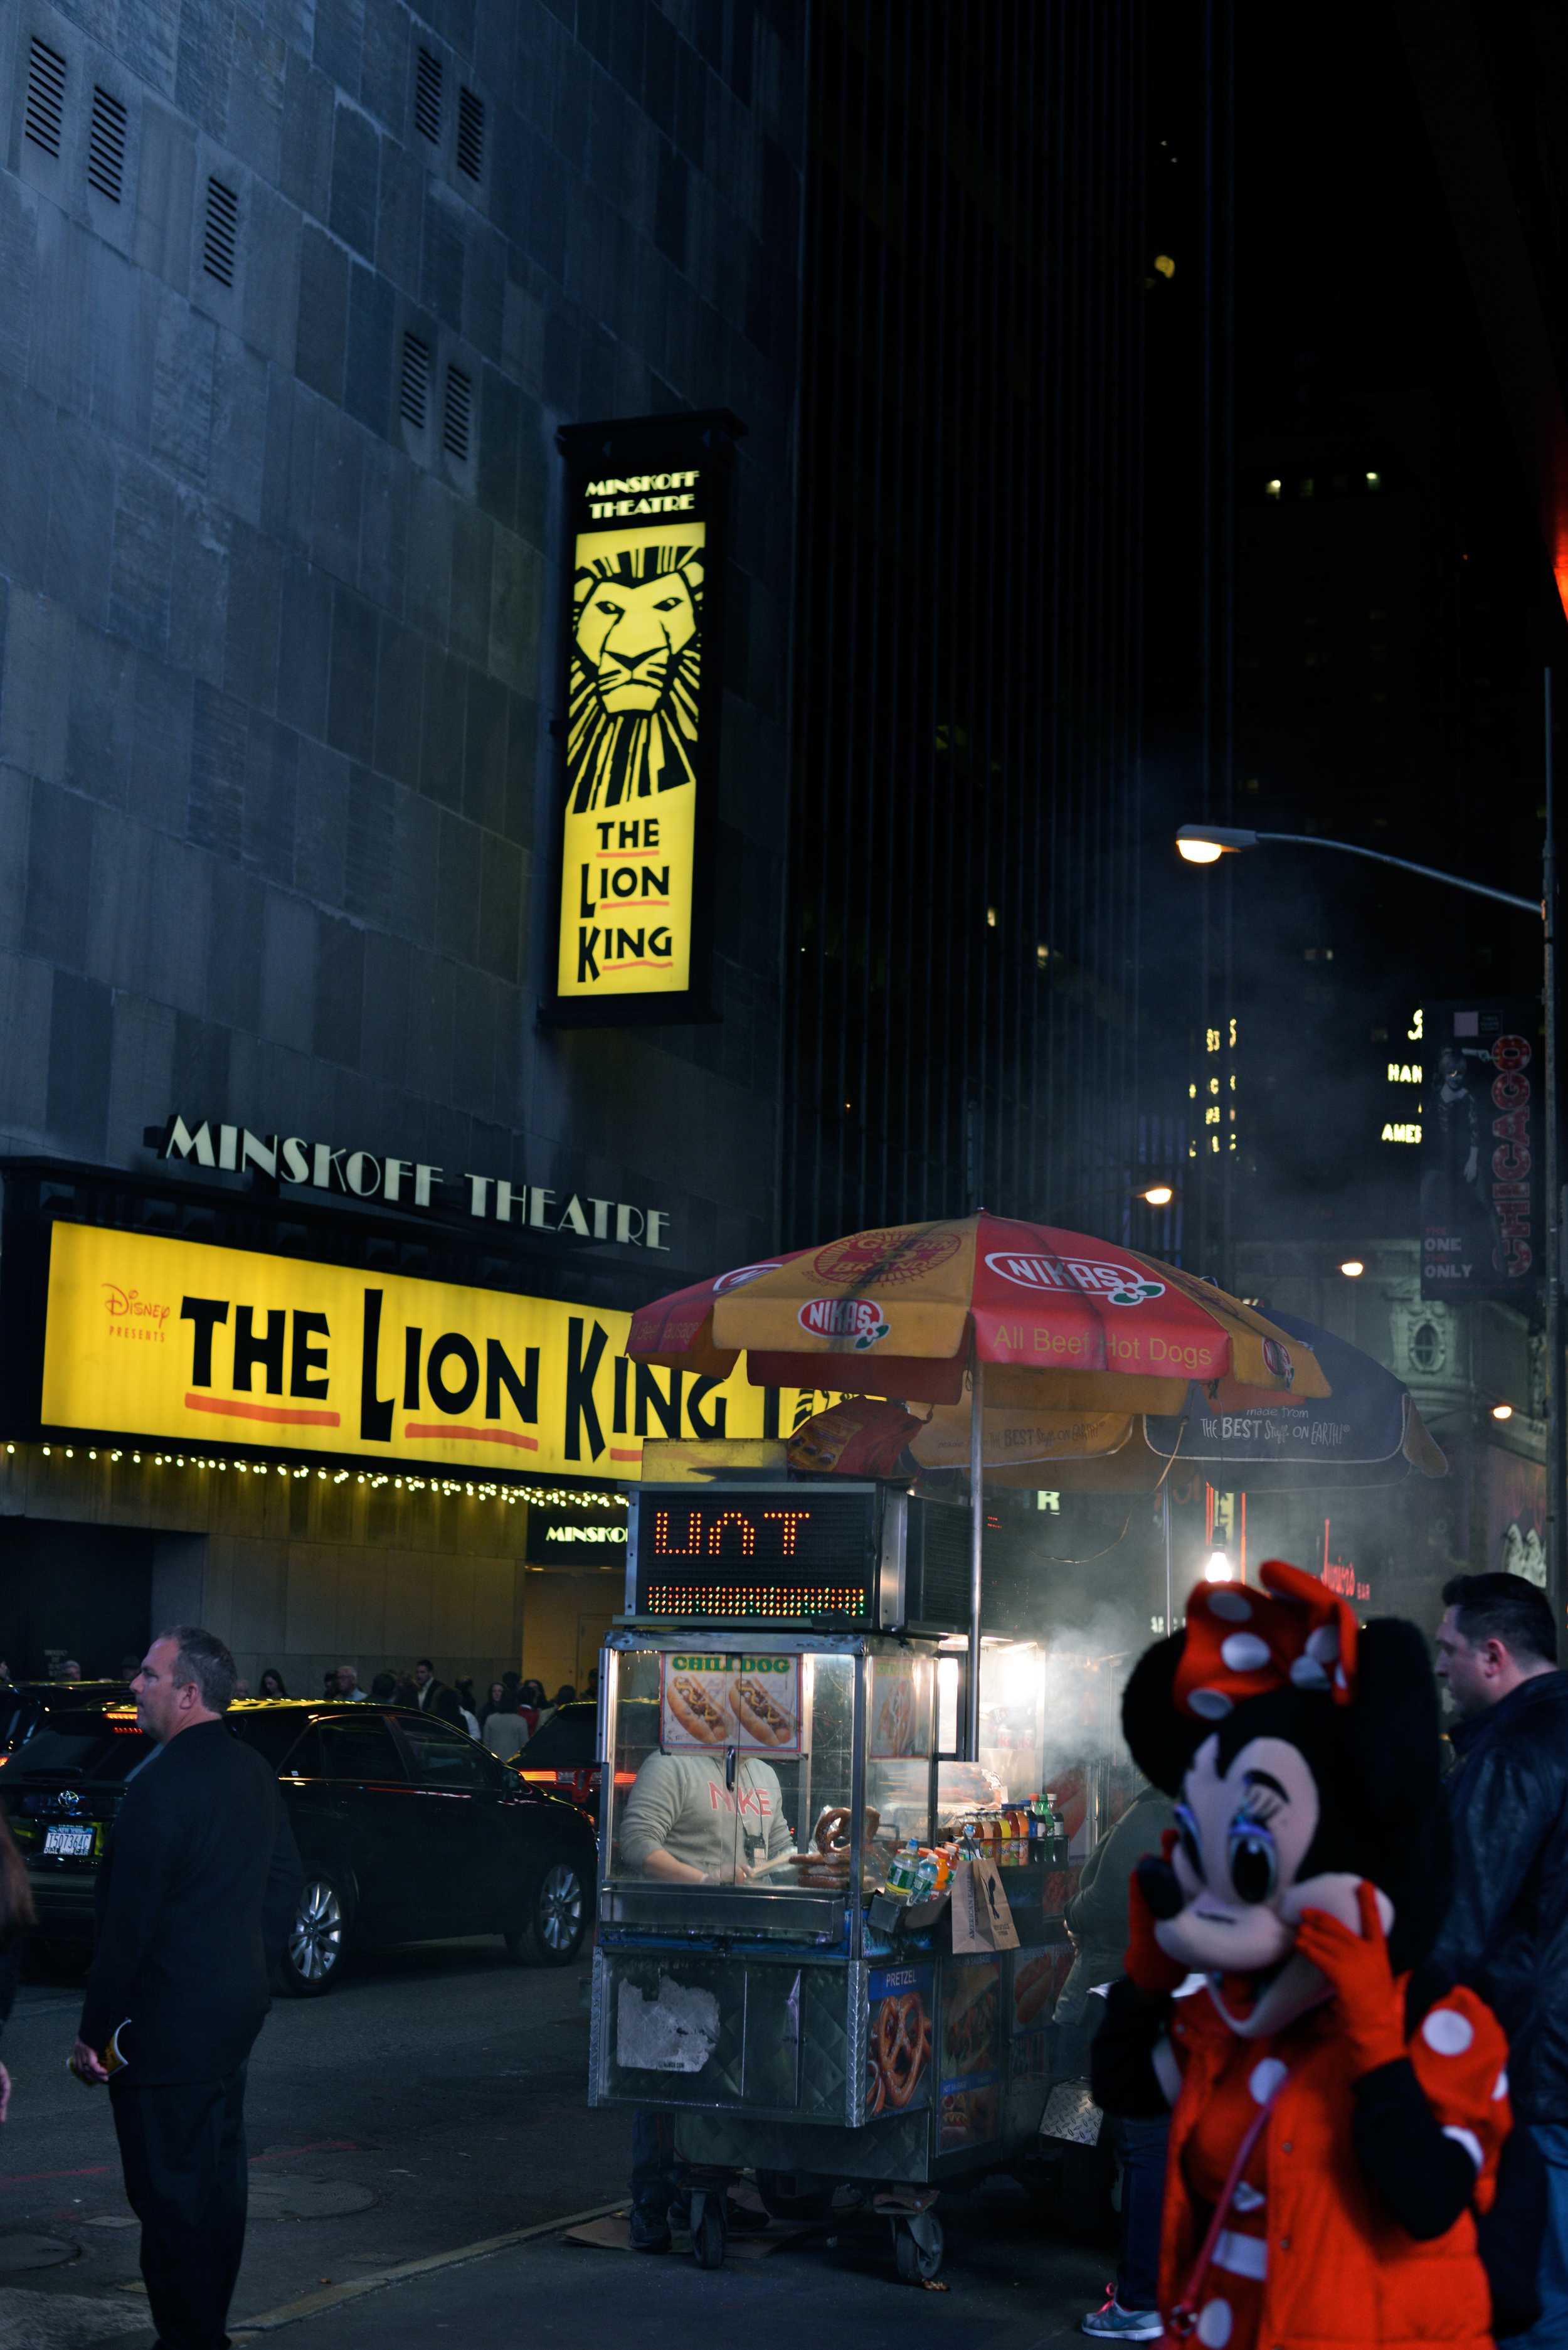 A costumed worker dressed as Minnie Mouse walks by a food stand in Times Square, New York, on April 21, 2015.